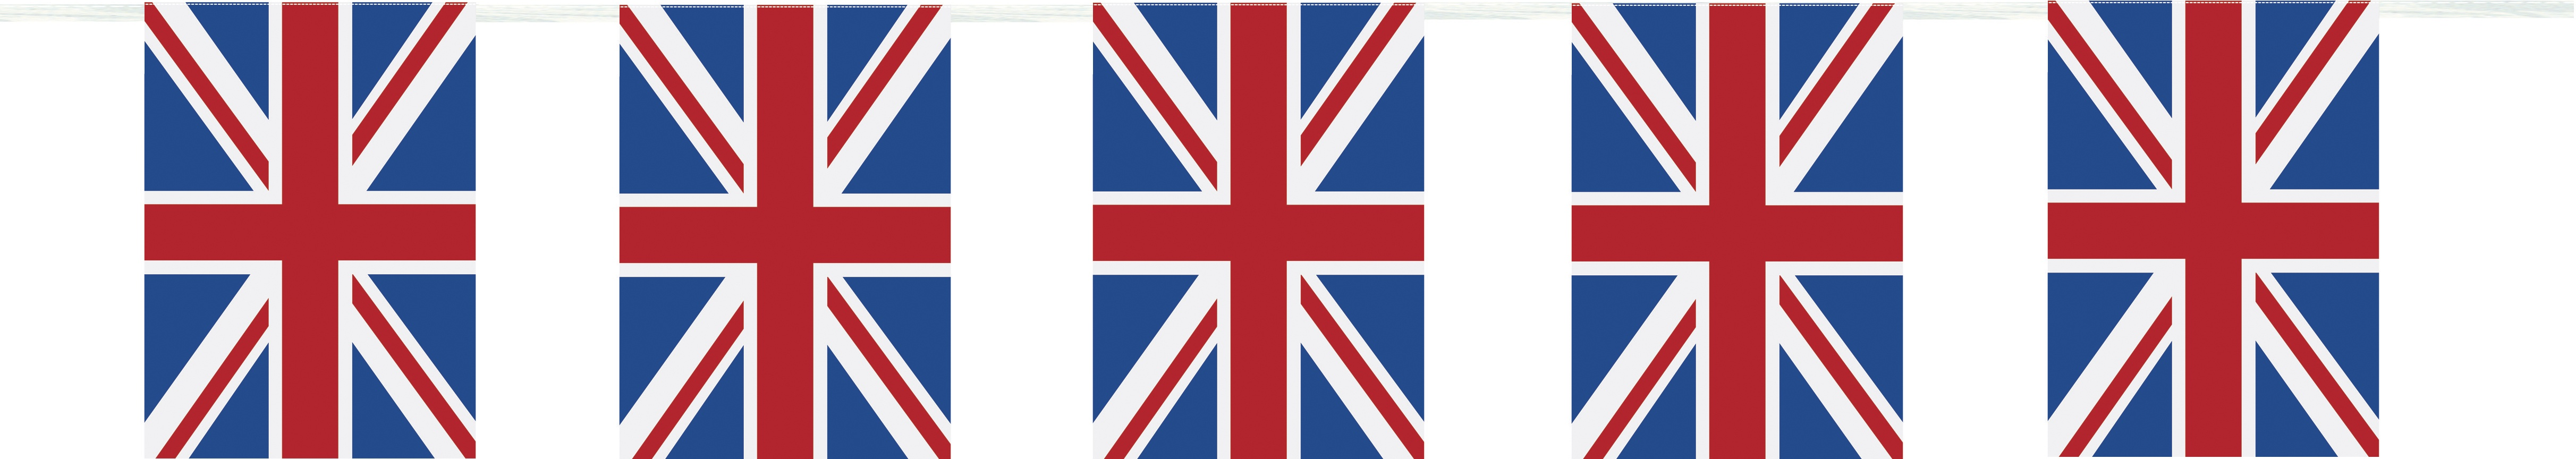 Union Jack Flaggenkette 3 Meter Lang Party Extra